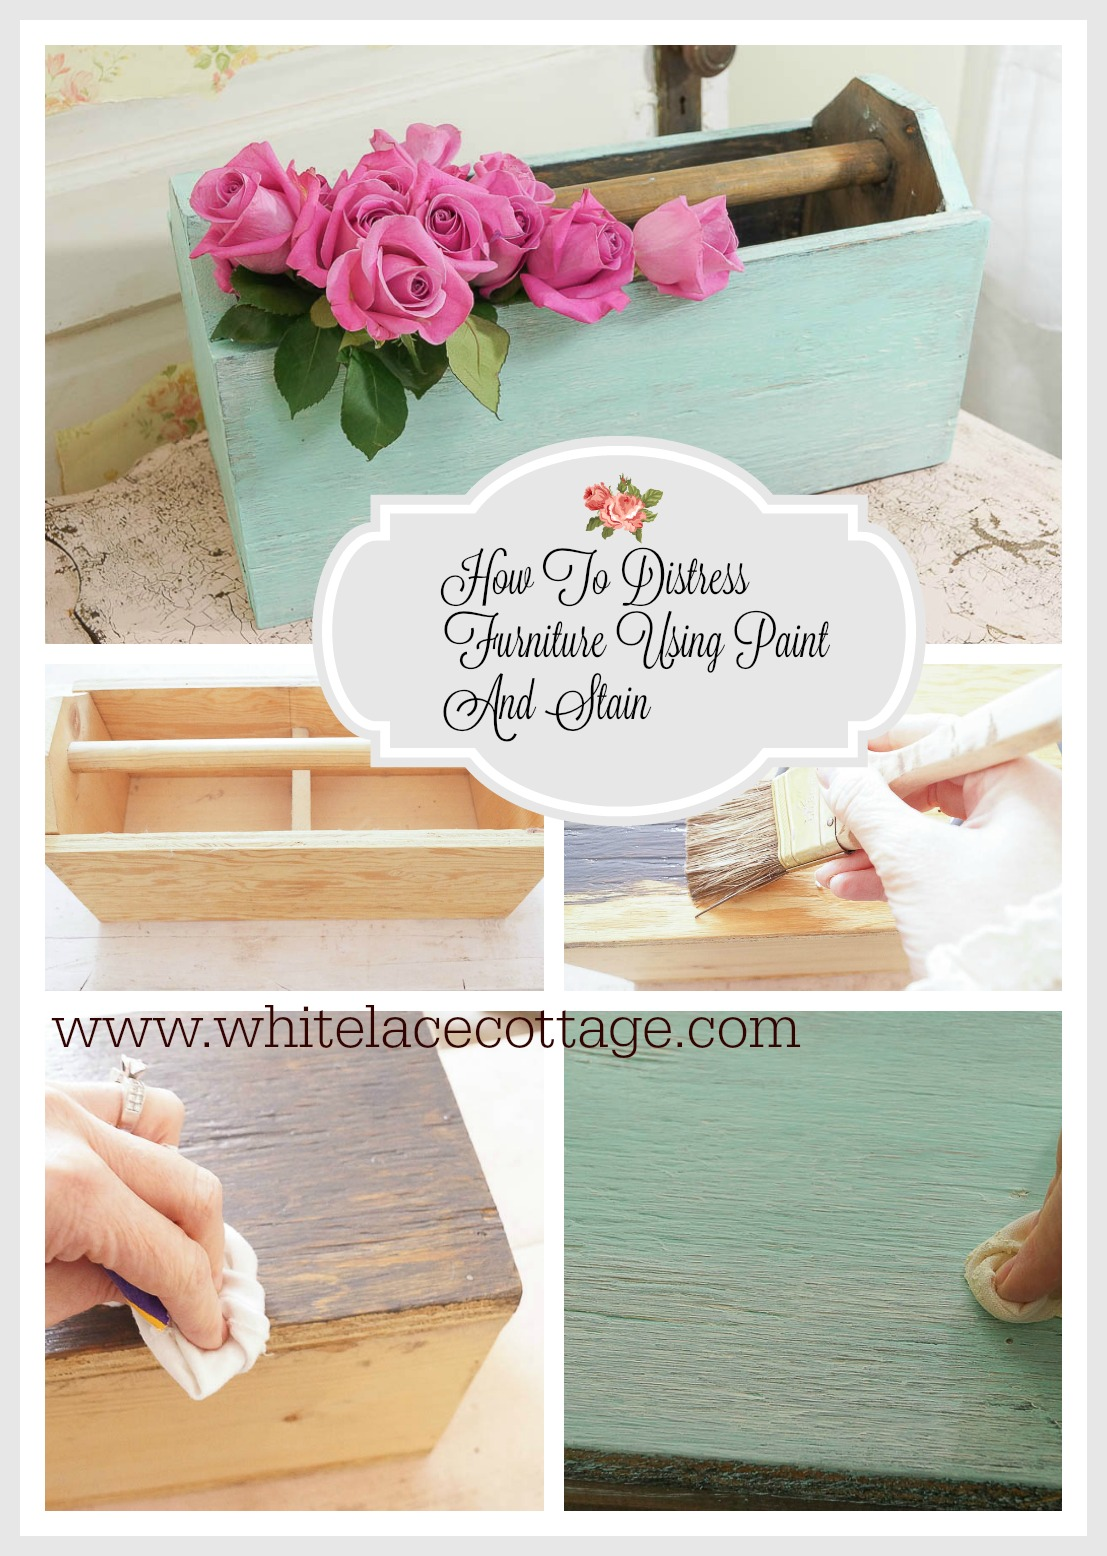 Furniture Painting or Staining